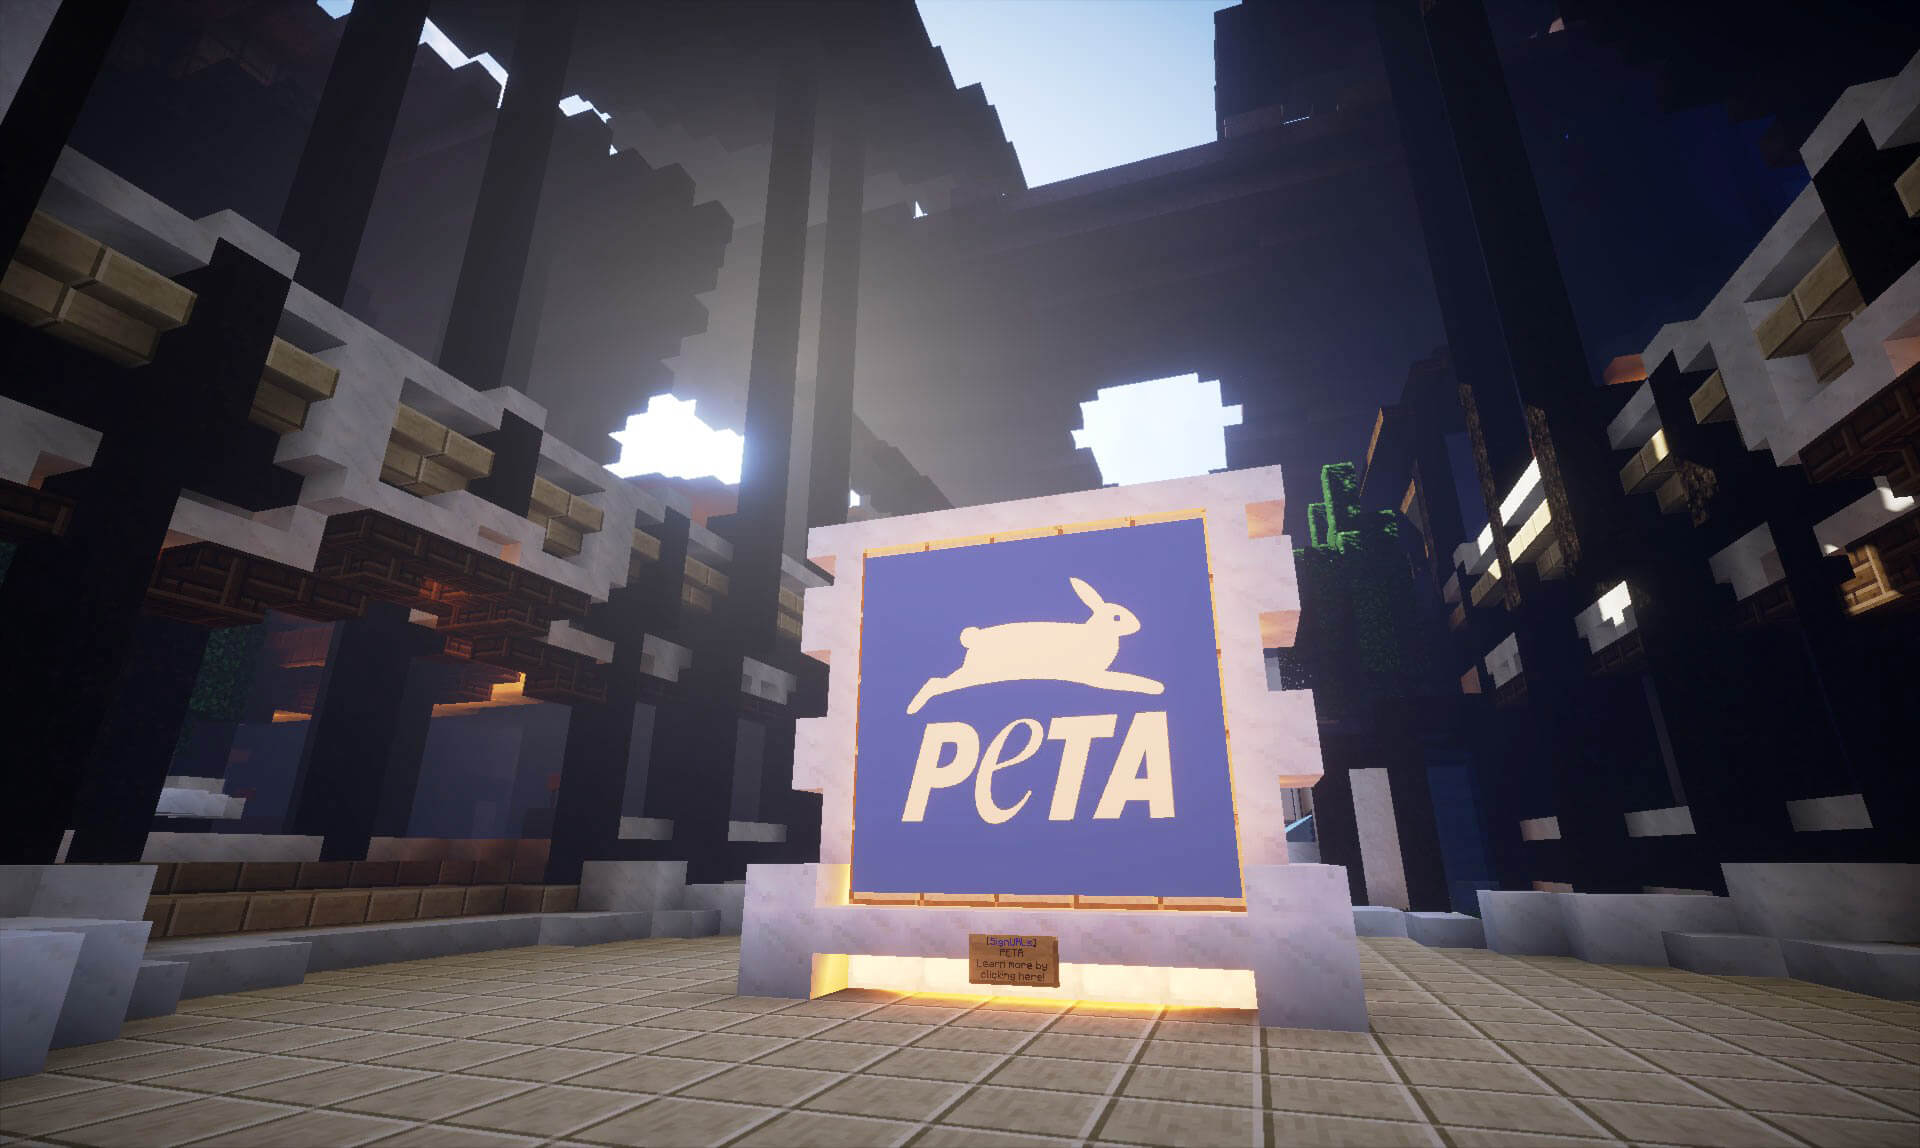 Inside the re-creation of peta's headquarters